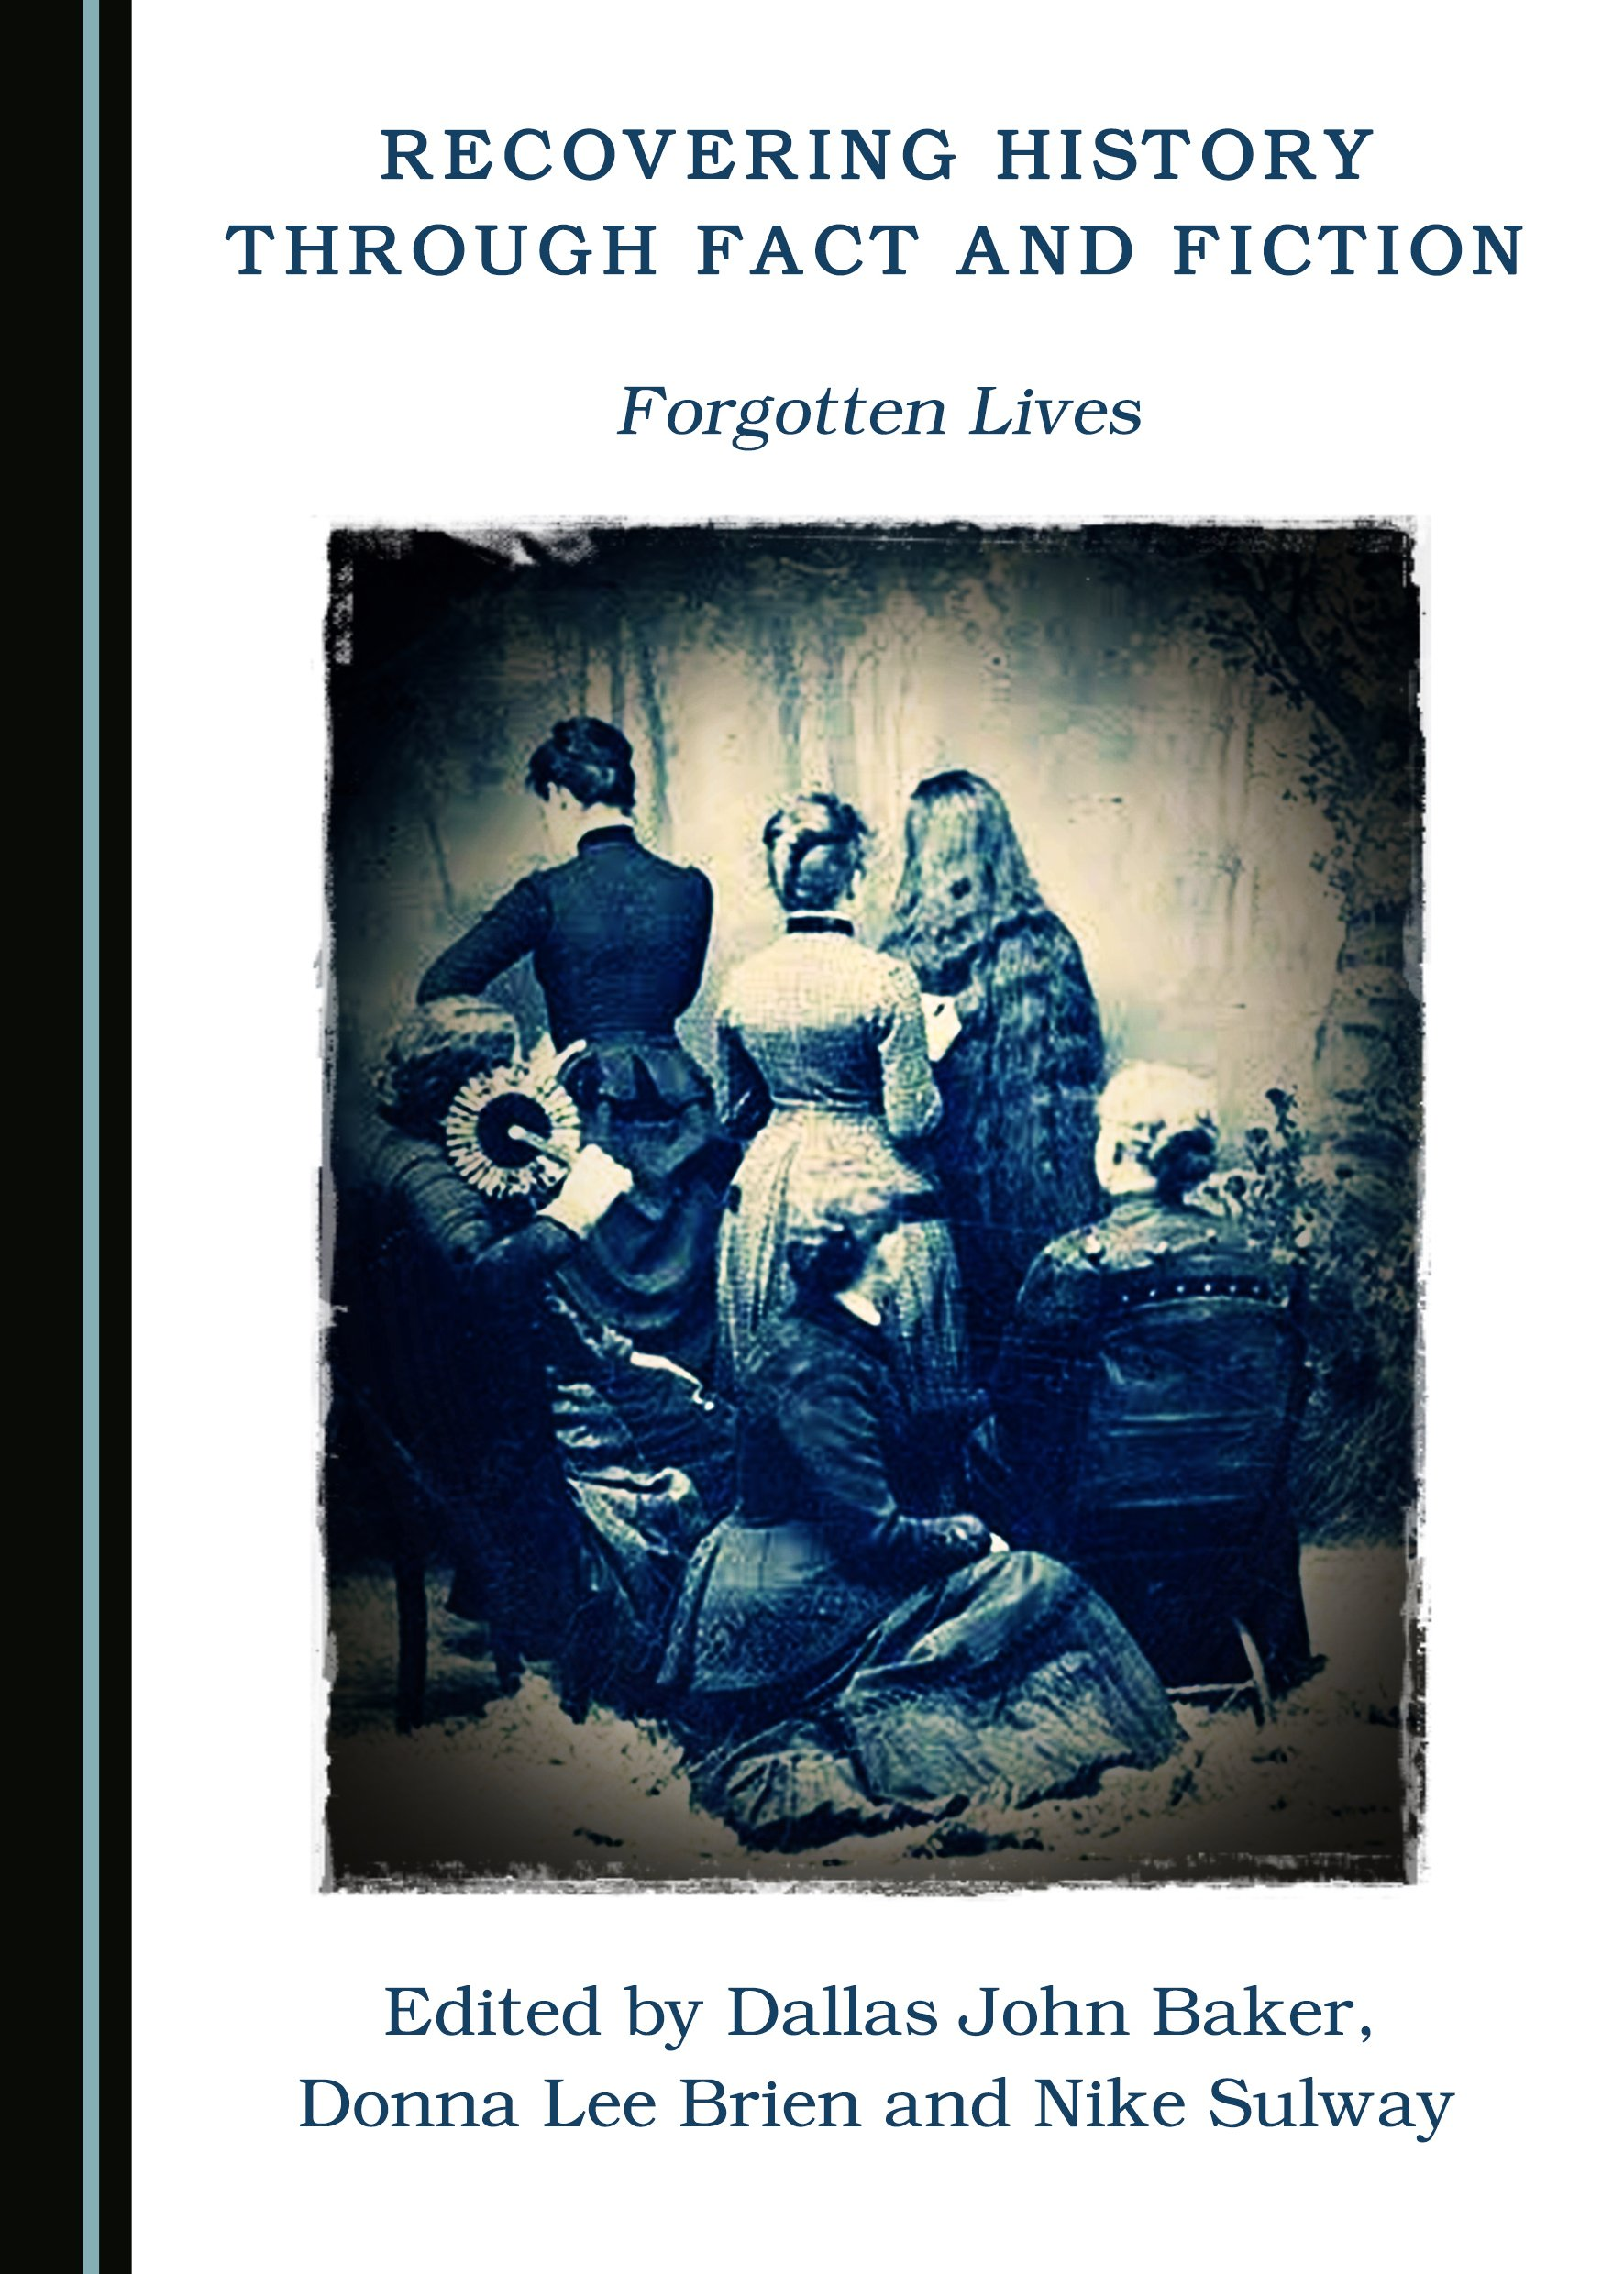 Recovering History through Fact and Fiction: Forgotten Lives